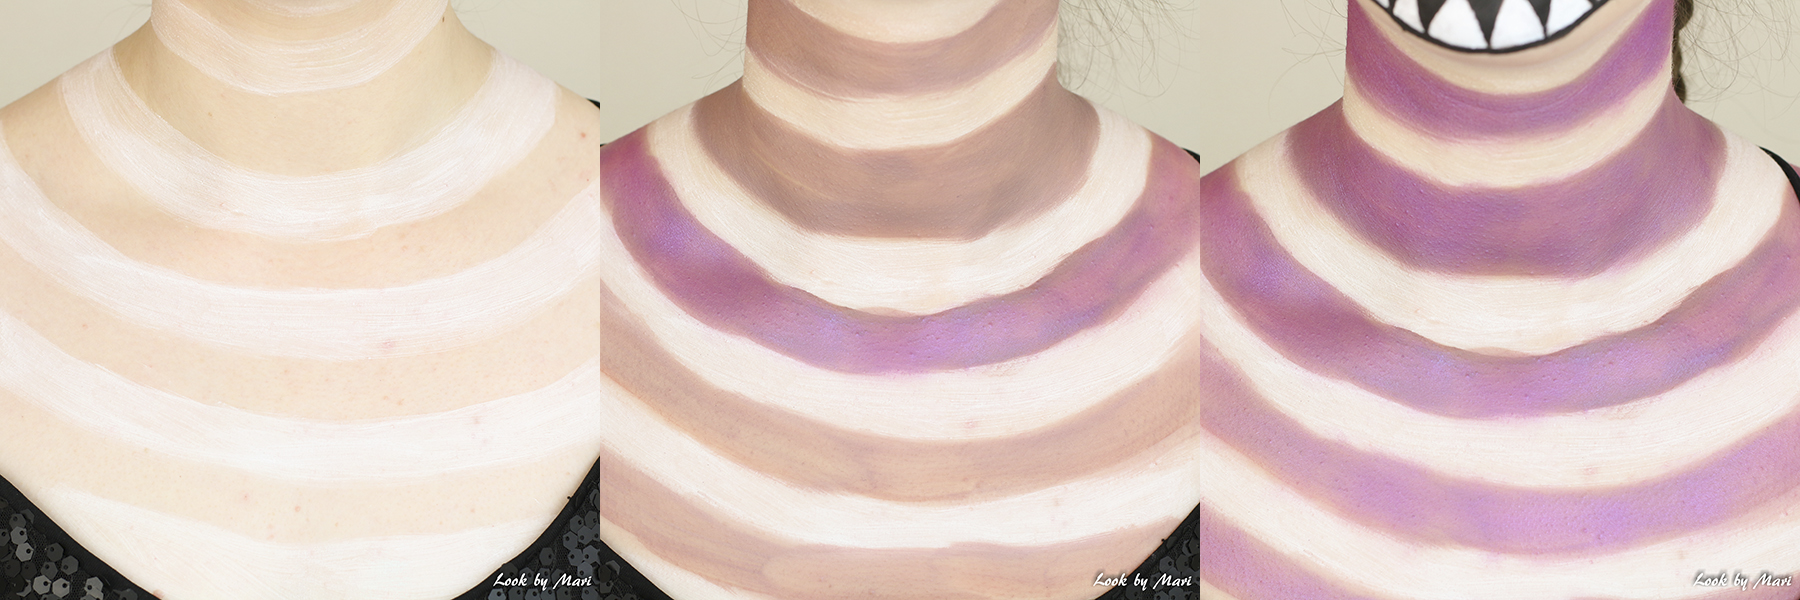 10 cat stripes tutorial how to colorful makeup